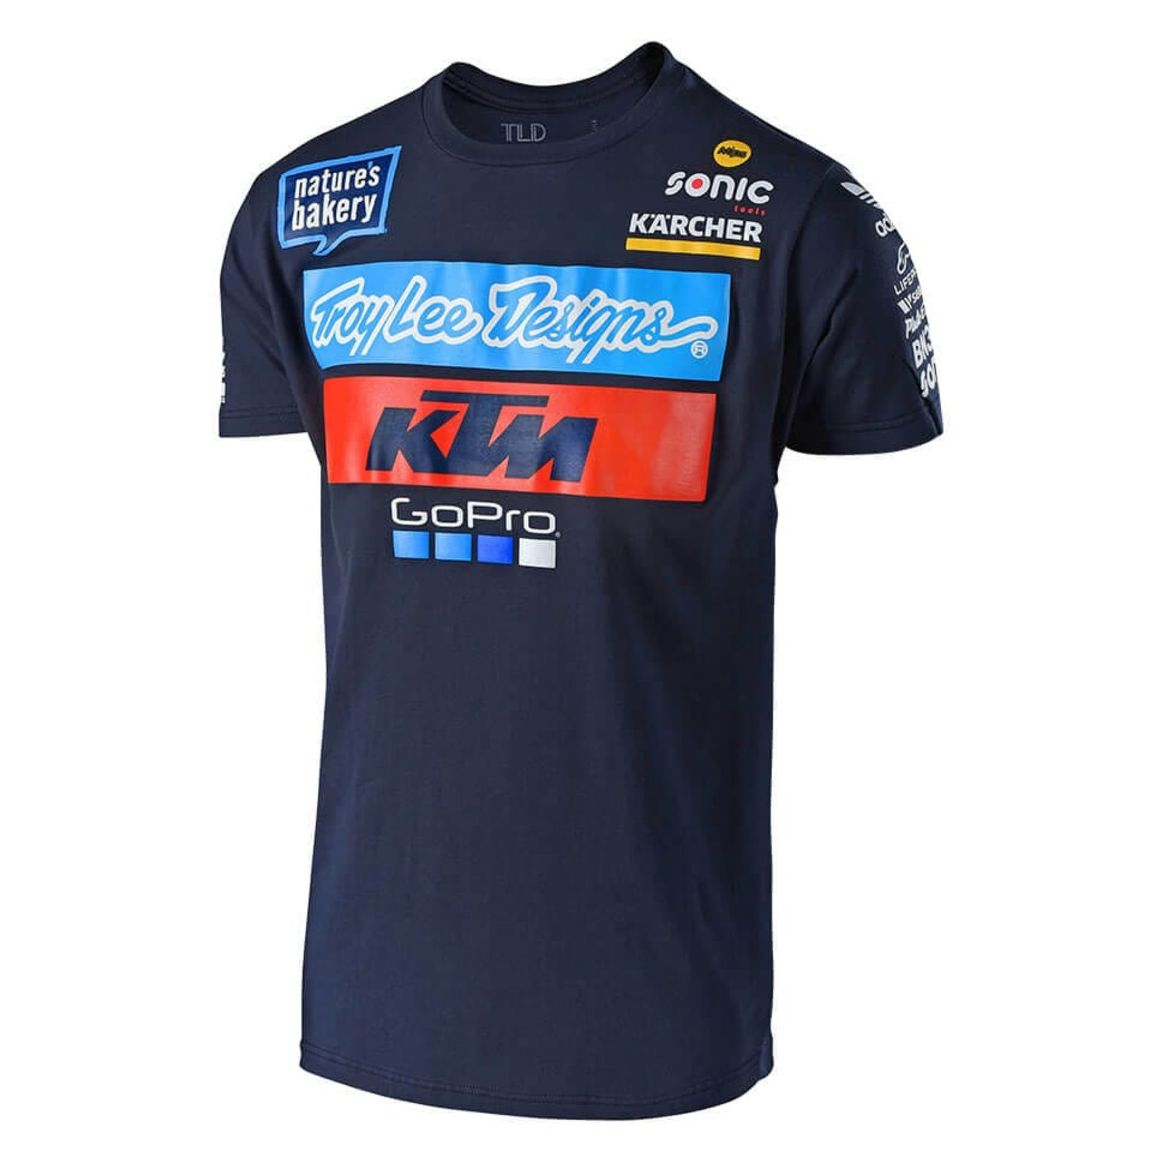 T Shirt Manches Courtes Troylee Design Tld Ktm Team Youth Tee Navy